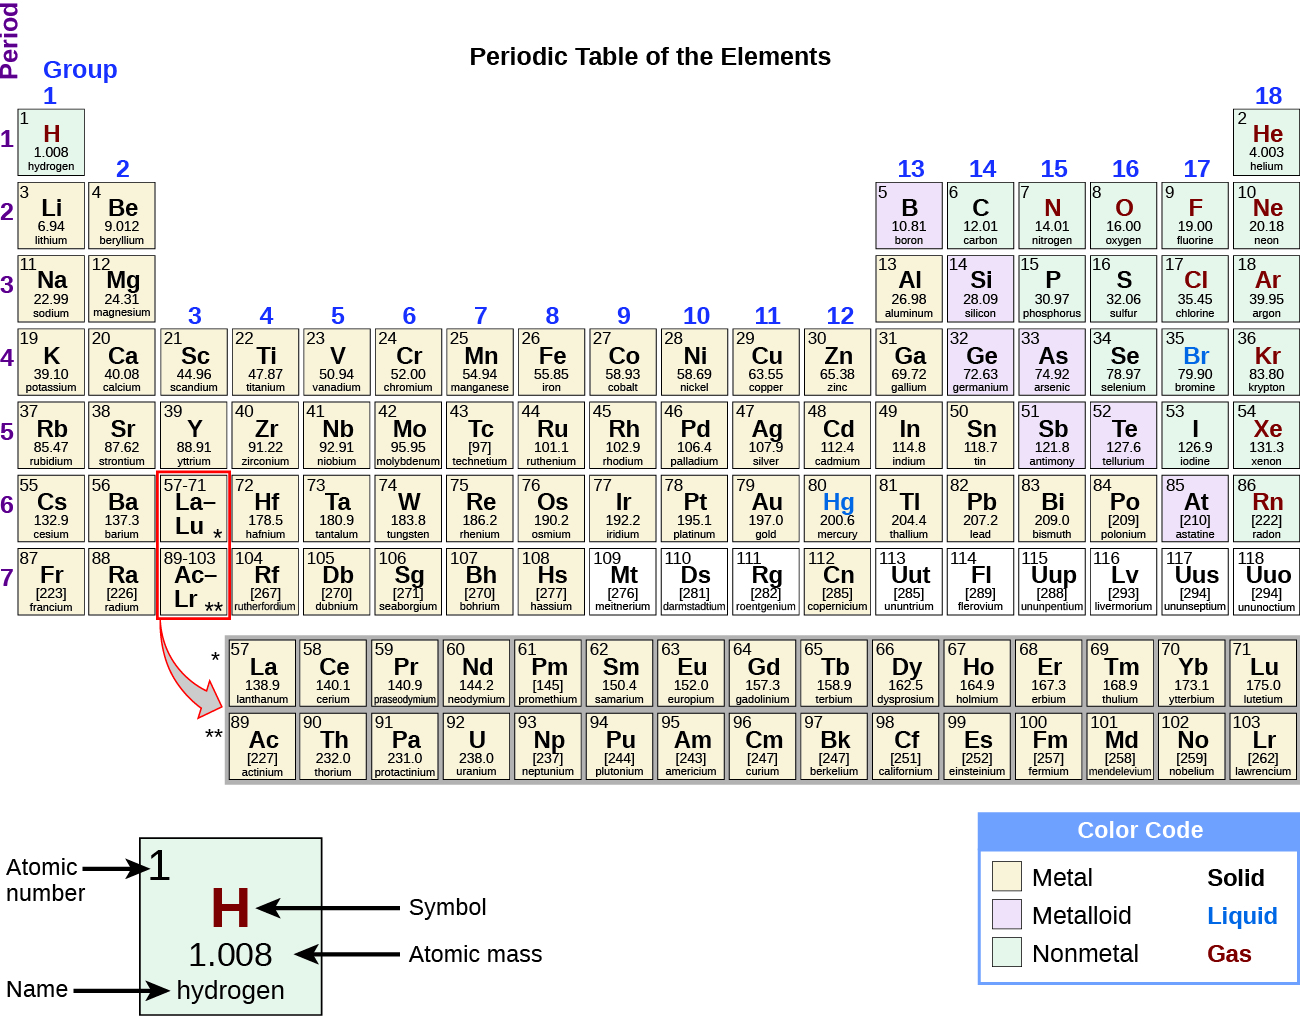 On this depiction of the periodic table, the metals are indicated with a yellow color and dominate the left two thirds of the periodic table. The nonmetals are colored peach and are largely confined to the upper right area of the table, with the exception of hydrogen, H, which is located in the extreme upper left of the table. The metalloids are colored purple and form a diagonal border between the metal and nonmetal areas of the table. Group 13 contains both metals and metalloids. Group 17 contains both nonmetals and metalloids. Groups 14 through 16 contain at least one representative of a metal, a metalloid, and a nonmetal. A key shows that, at room temperature, metals are solids, metalloids are liquids, and nonmetals are gases.